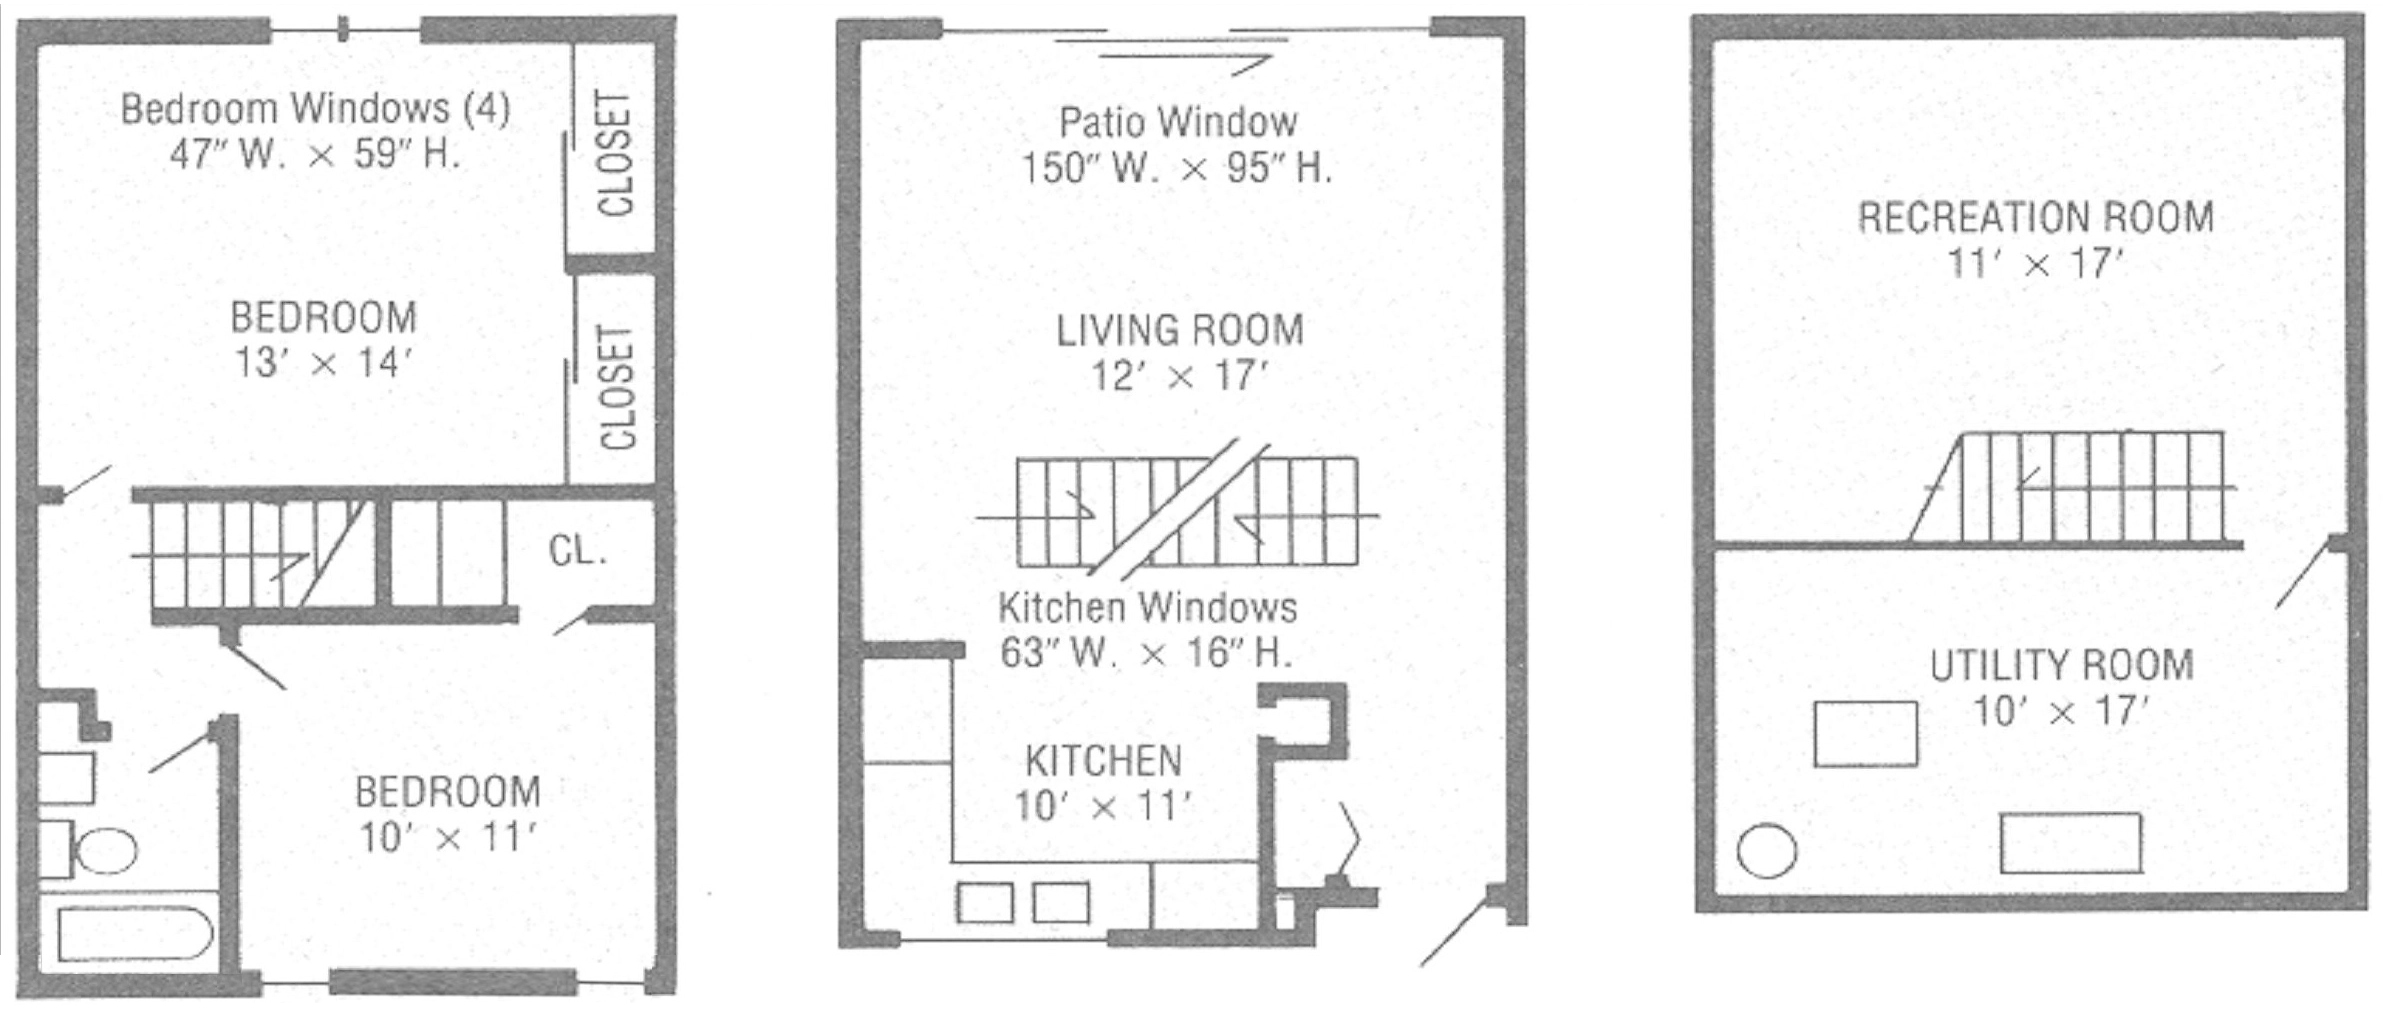 Pillsbury Court Townhouse Floorplan - three stories including two bedrooms